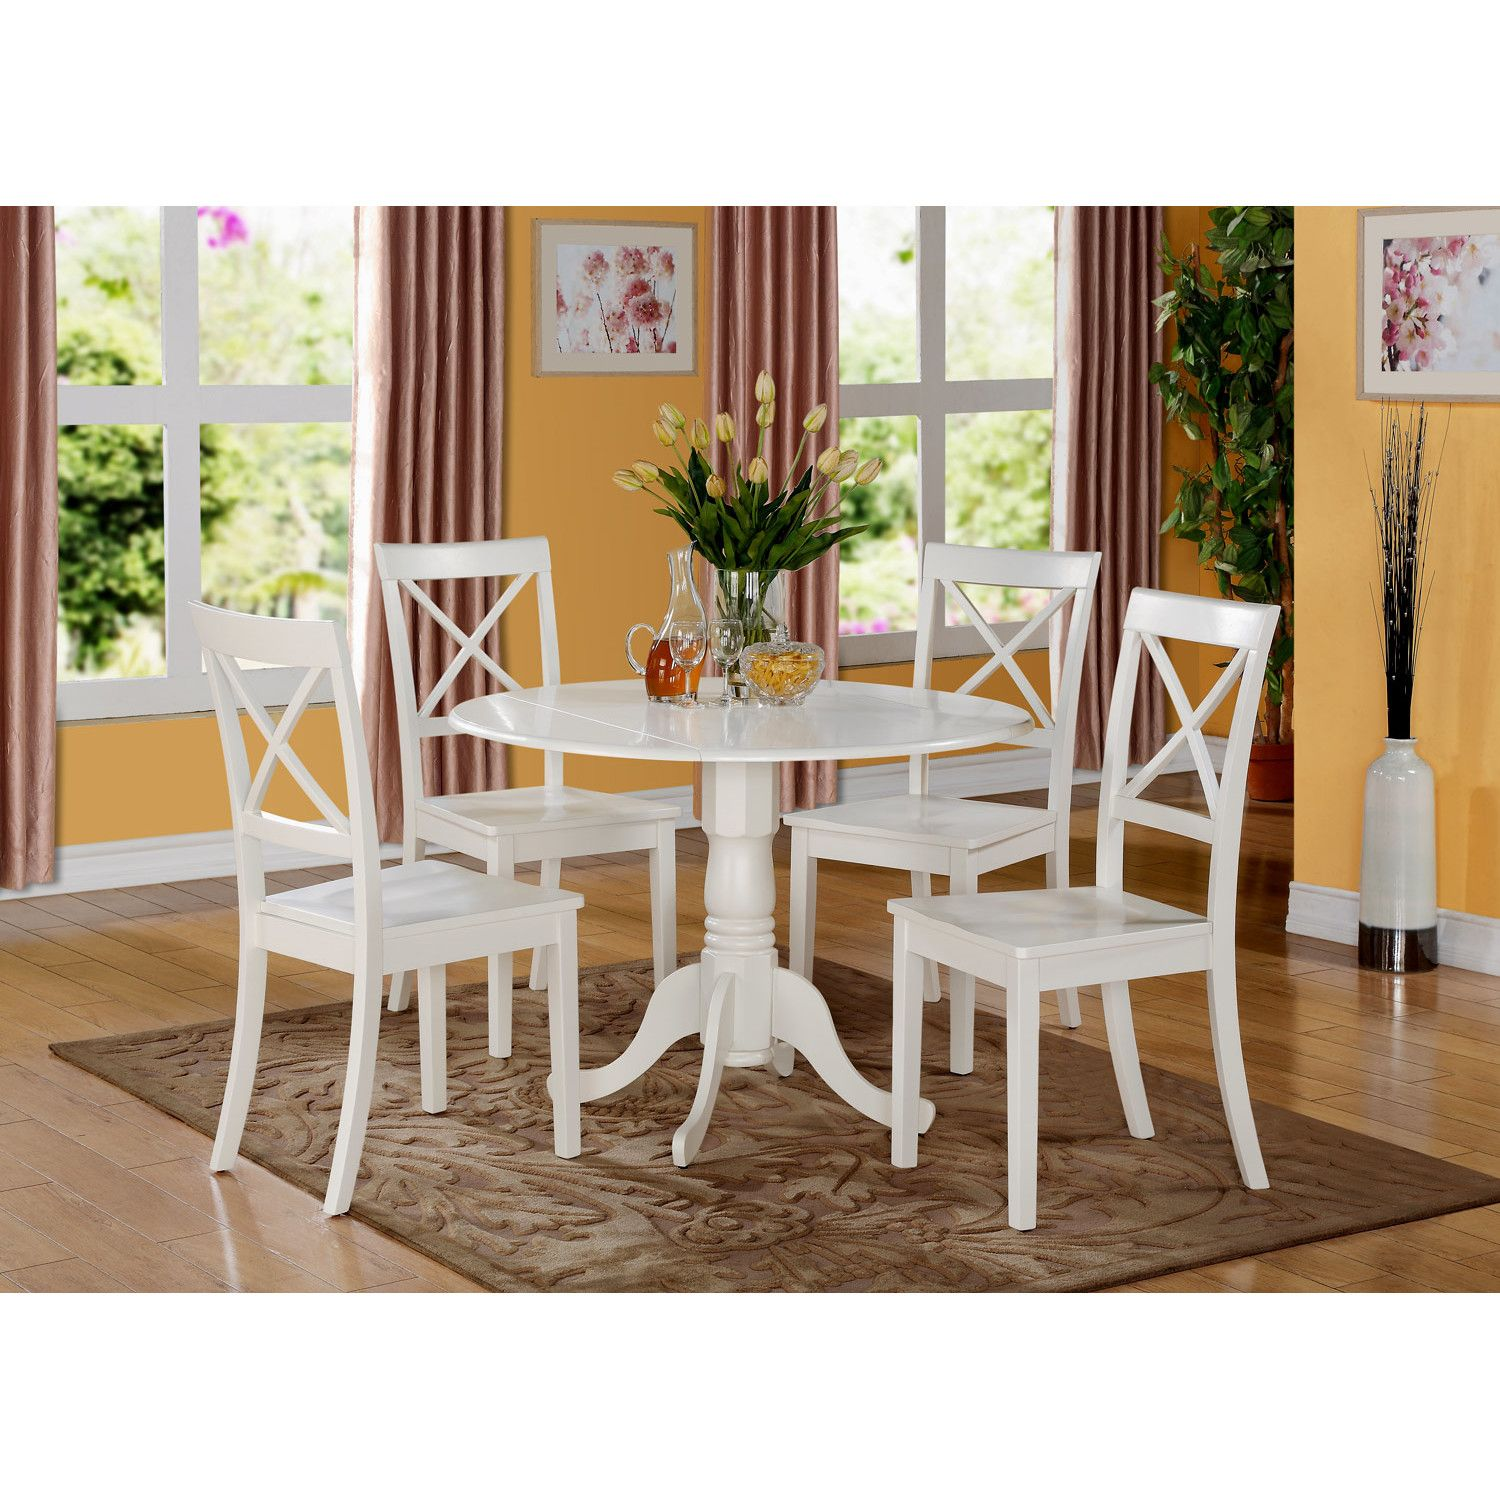 Charlton Home Gloucester 5 Piece Dining Set  New Mi House Beauteous Dining Room 5 Piece Sets Design Decoration